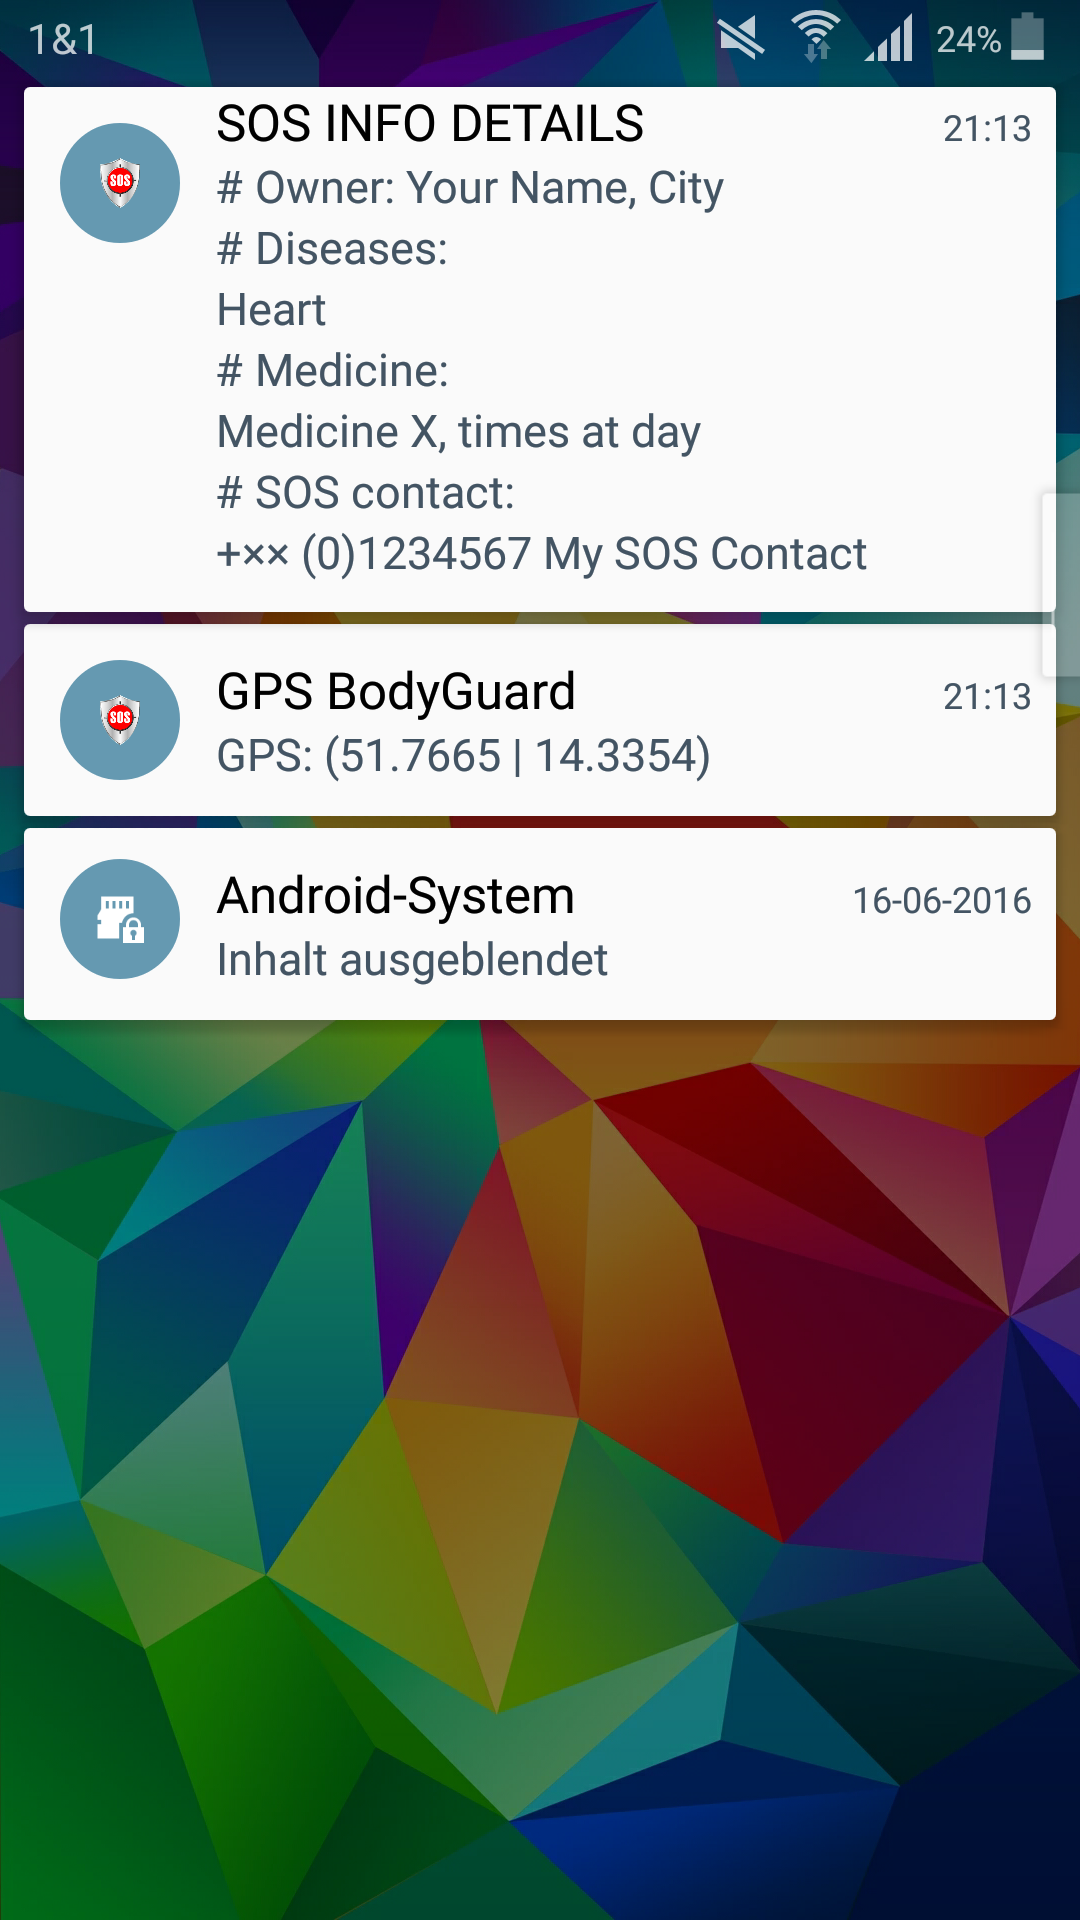 SOS App GPS BodyGuard Screen SOS Info